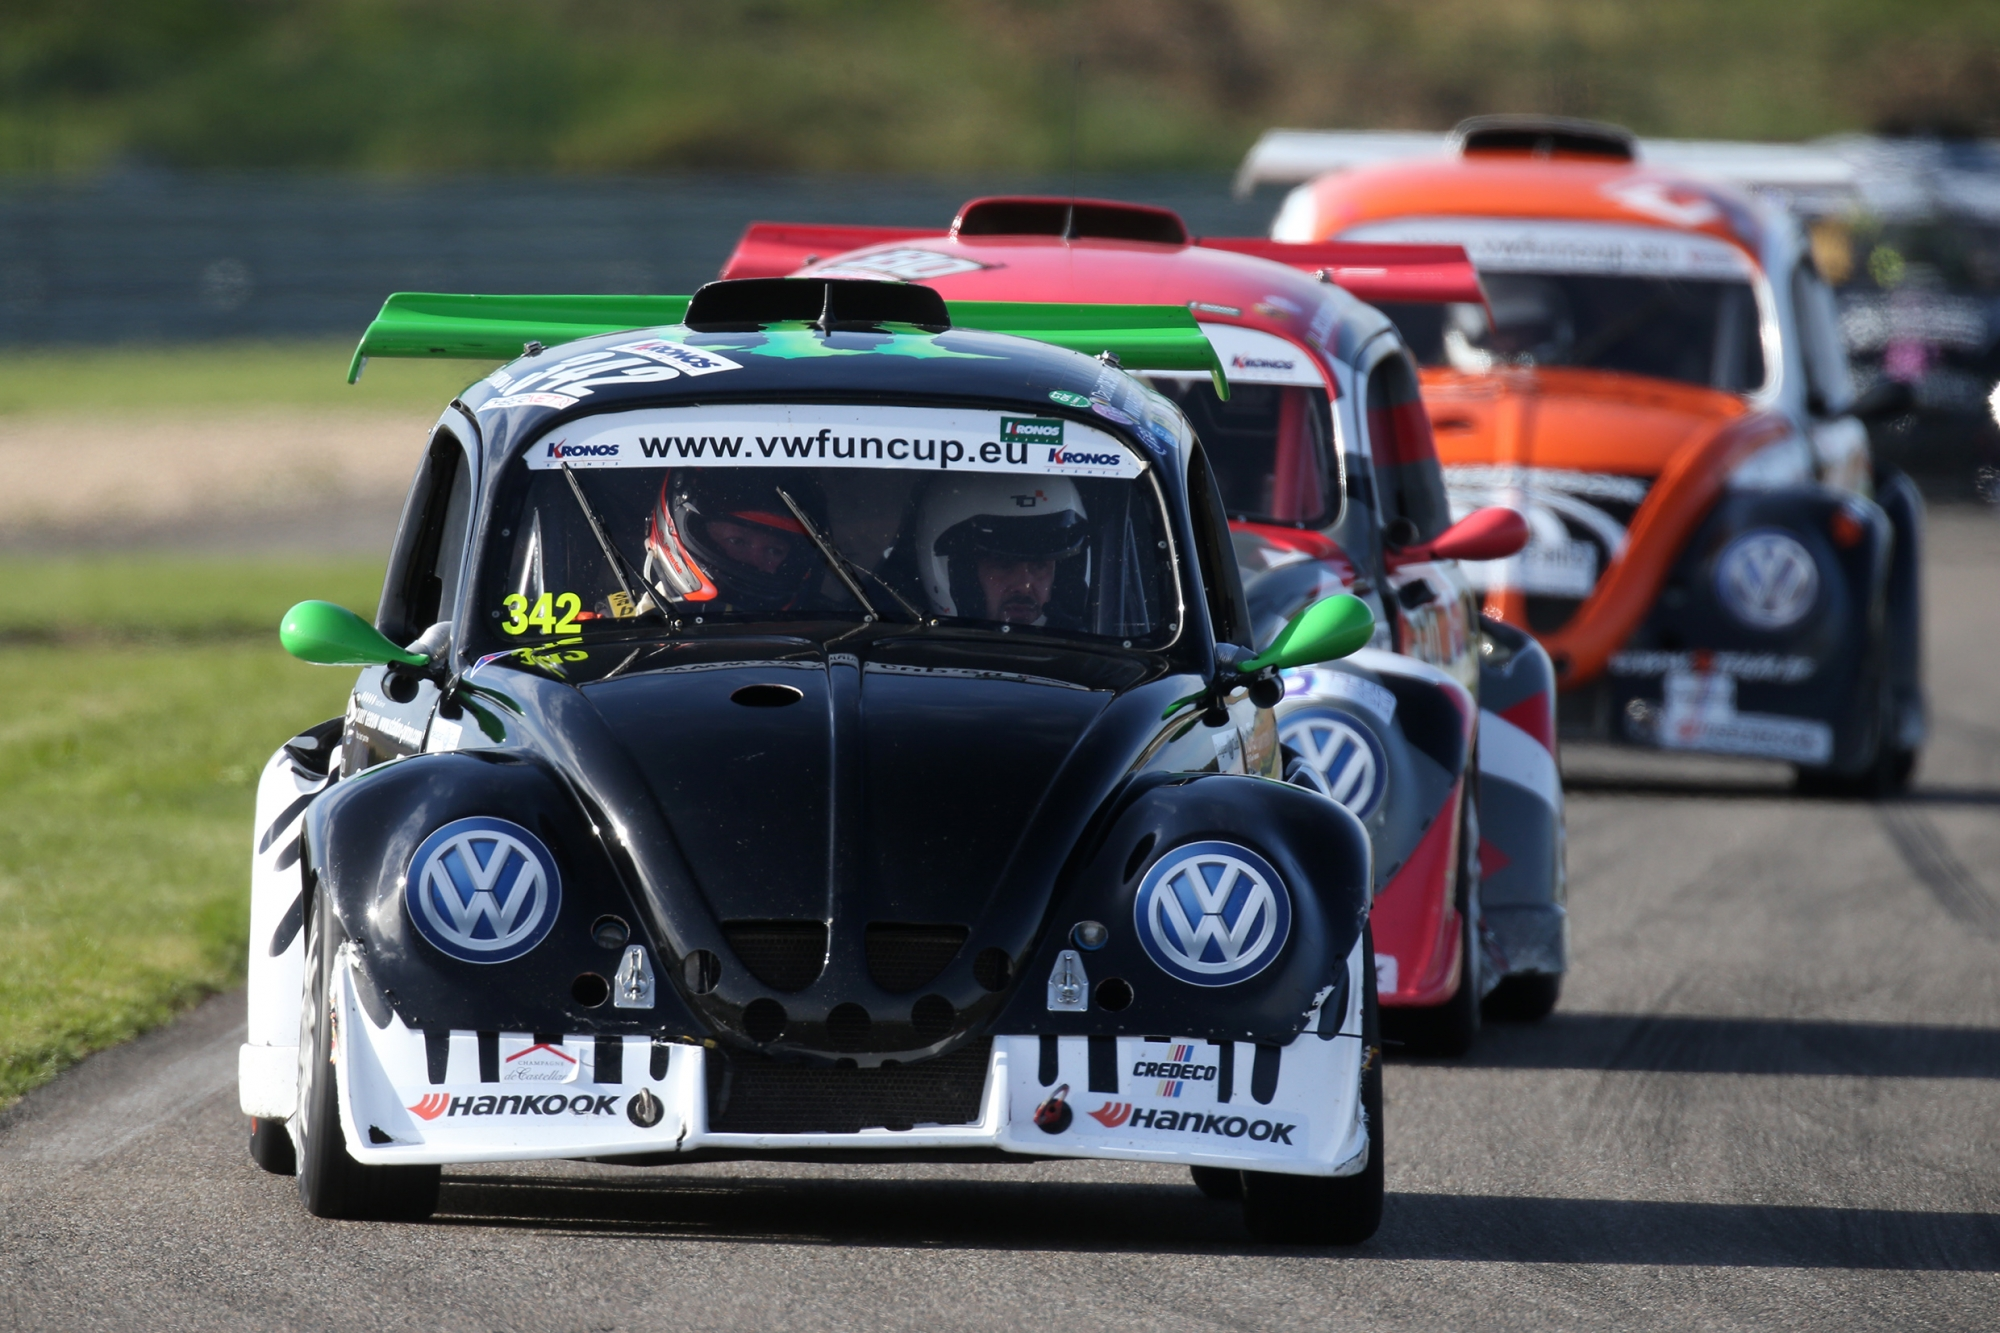 image 6 - VW Fun Cup powered by Hankook : een aftrap in stijl in Mettet !